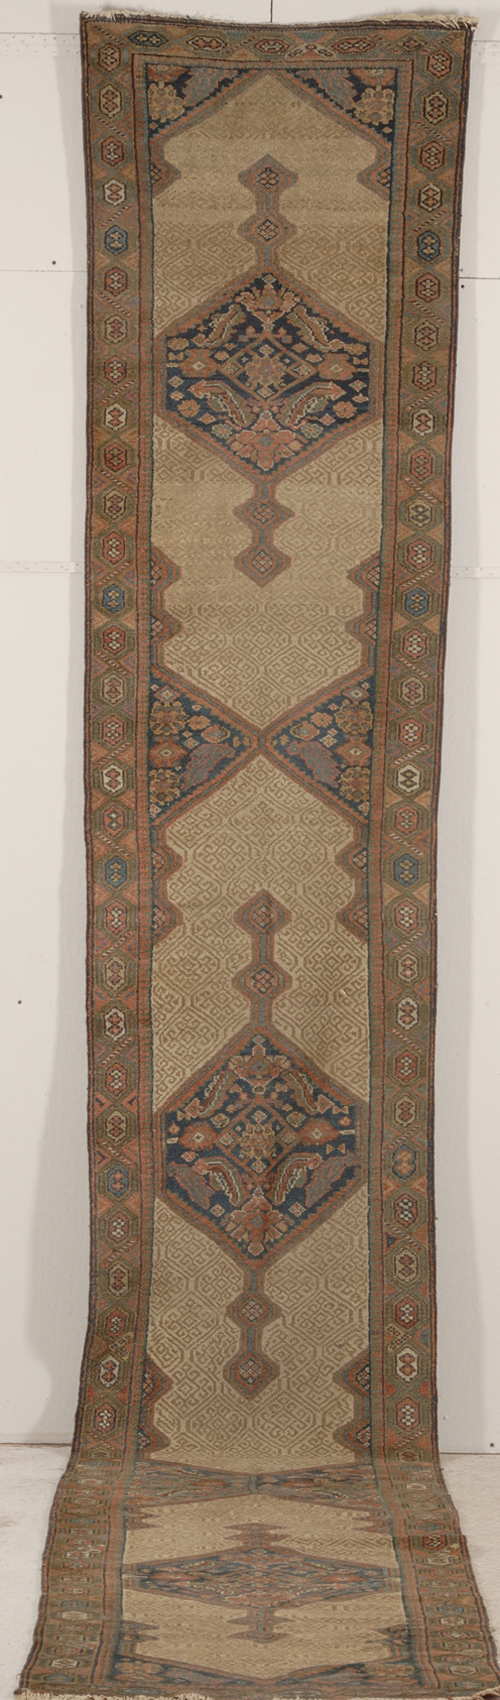 John Lennon and Yoko Ono once owned this Serab runner, which is 17 feet long. It was made in northwest Persia in the last quarter of the 19th century. The lot includes certificate of ownership. Image courtesy Skinner Inc.